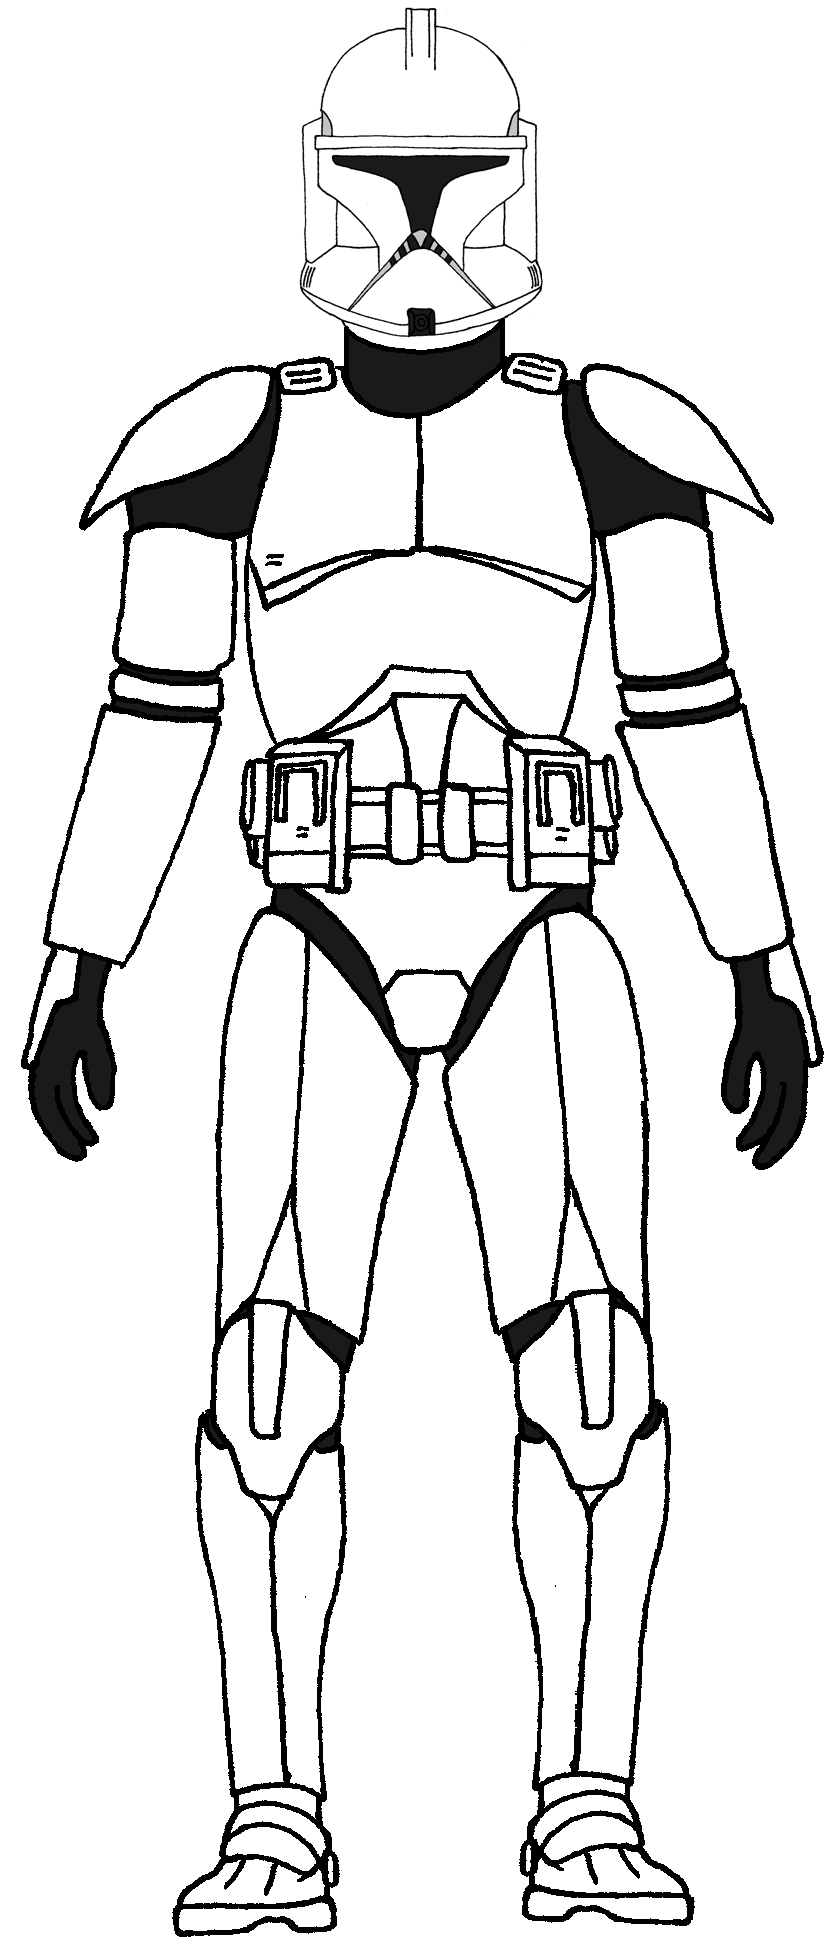 coloring star wars clone trooper coloring page coloring home wars star coloring clone